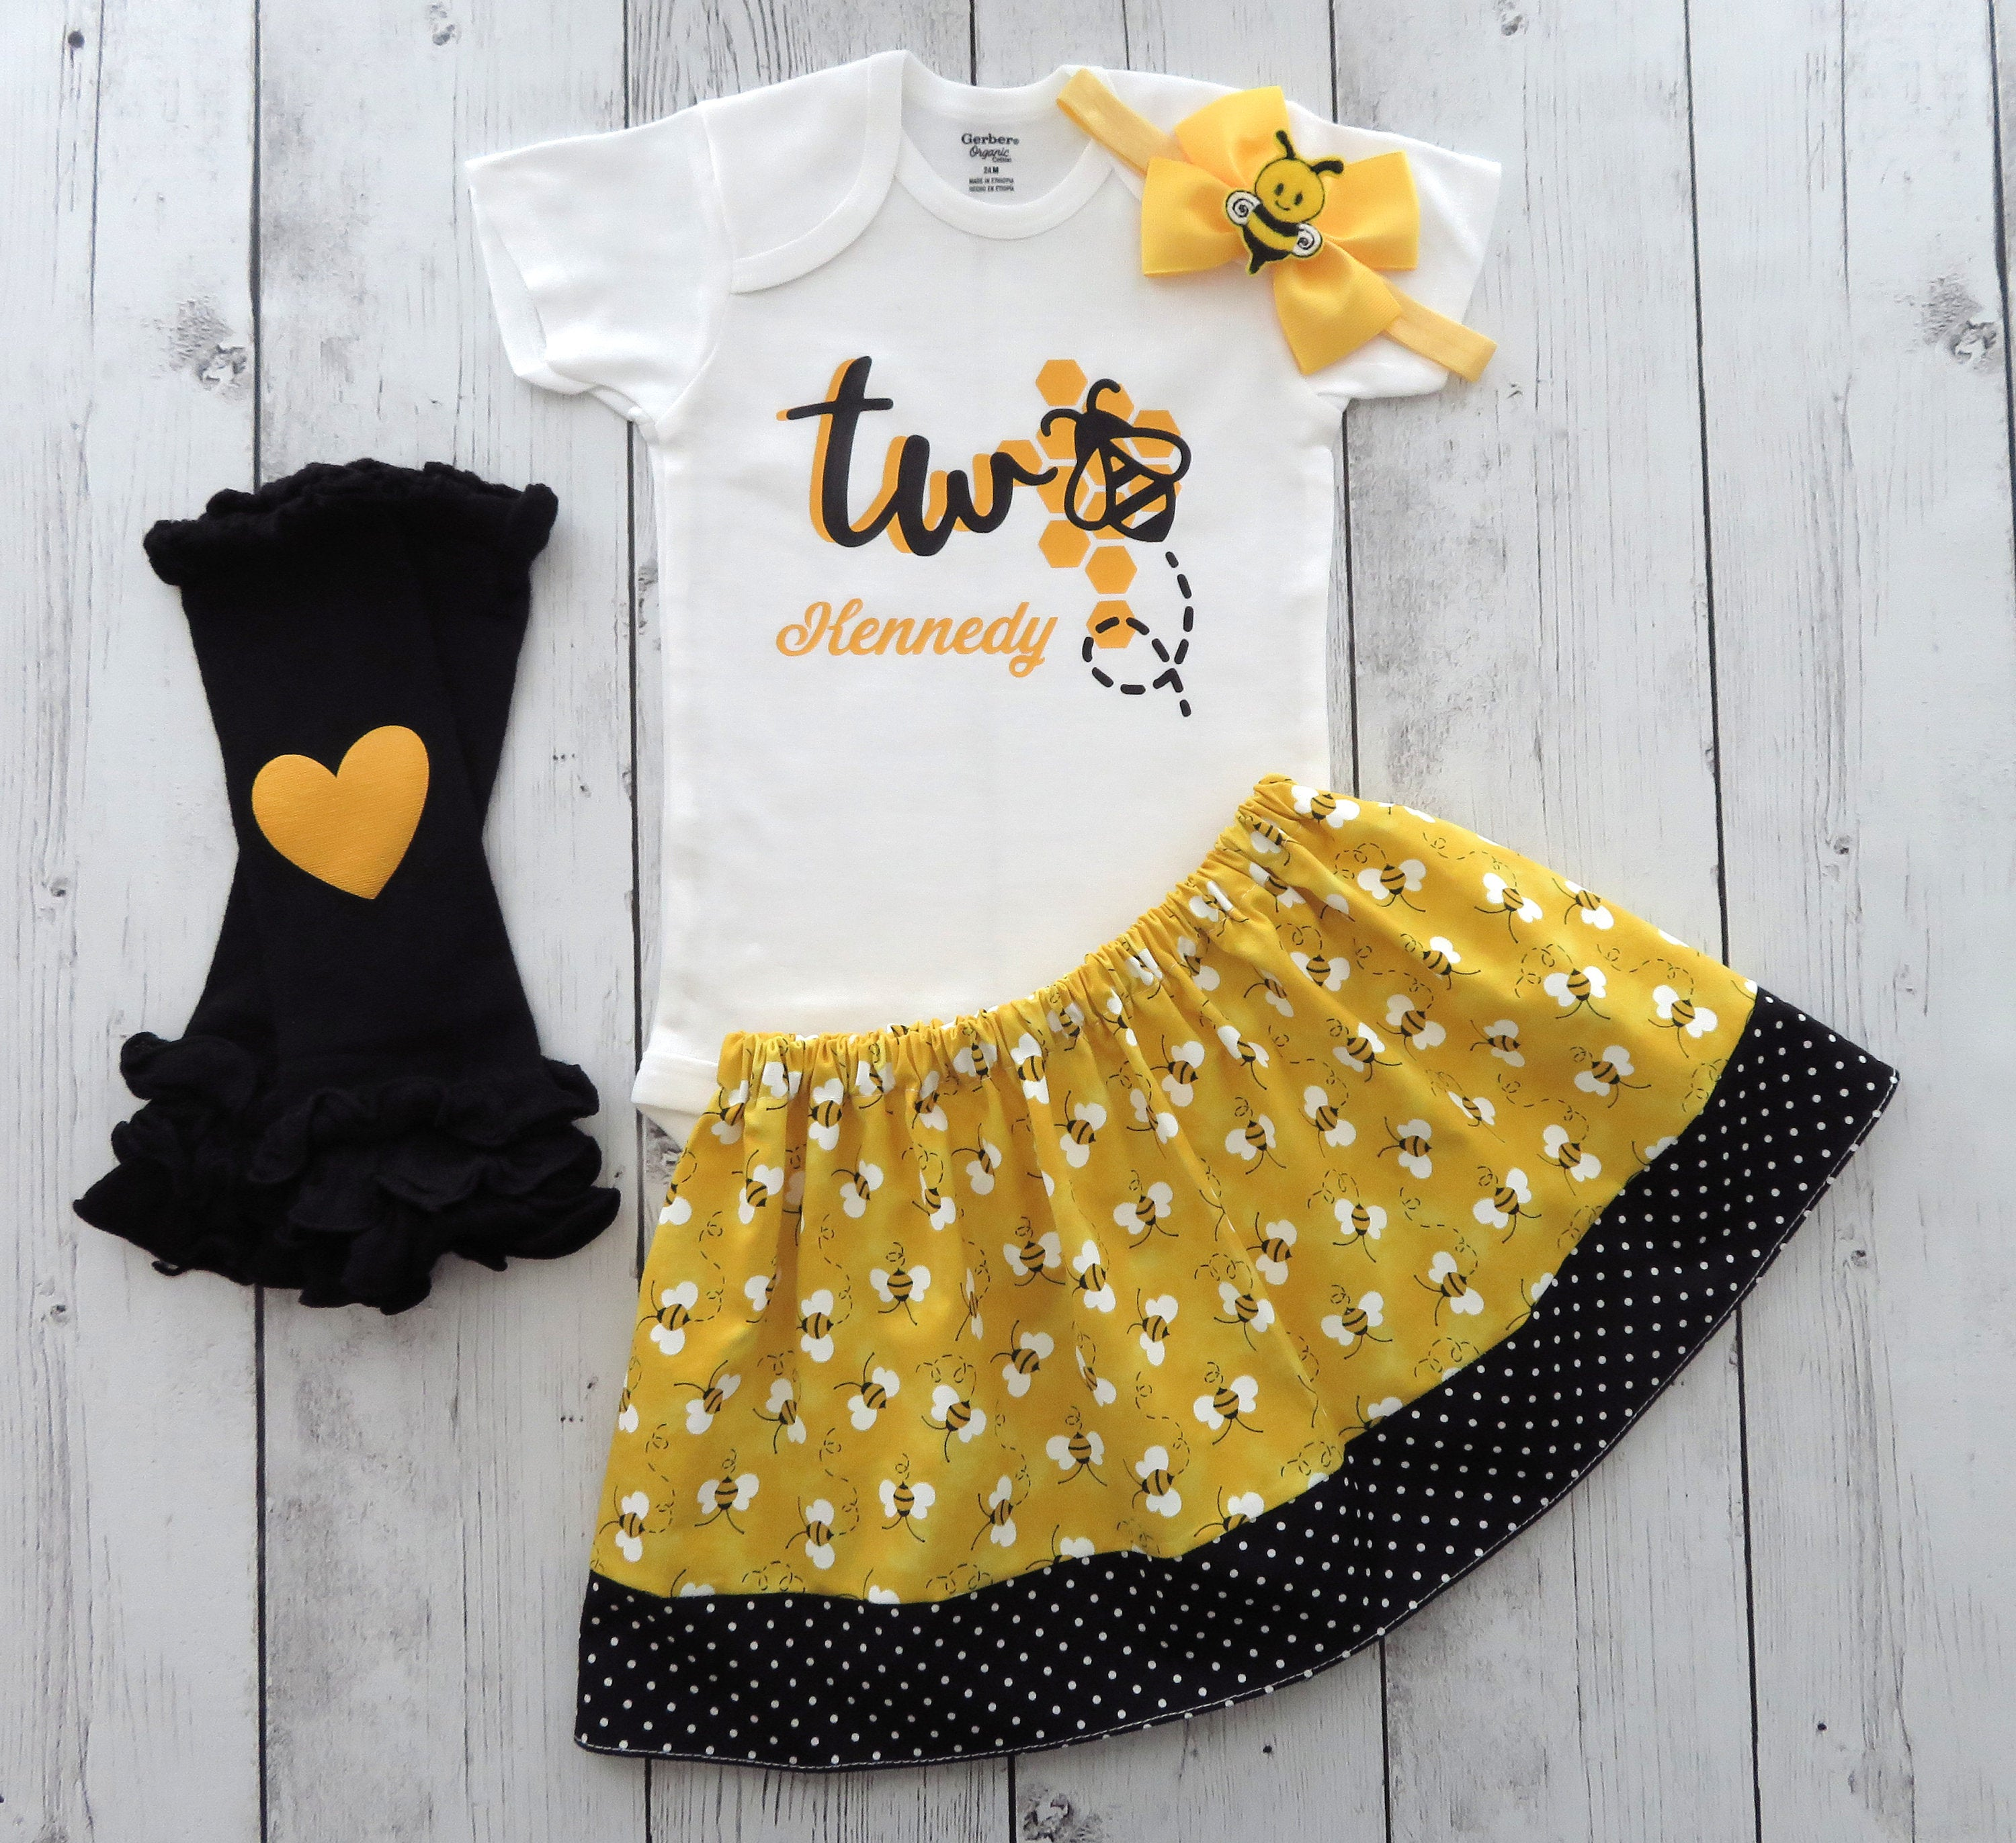 Bumble Bee Second Birthday Outfit for baby girl - yellow black, bumble bee girl birthday outfit, bumblebee skirt, 2nd bday outfit girl